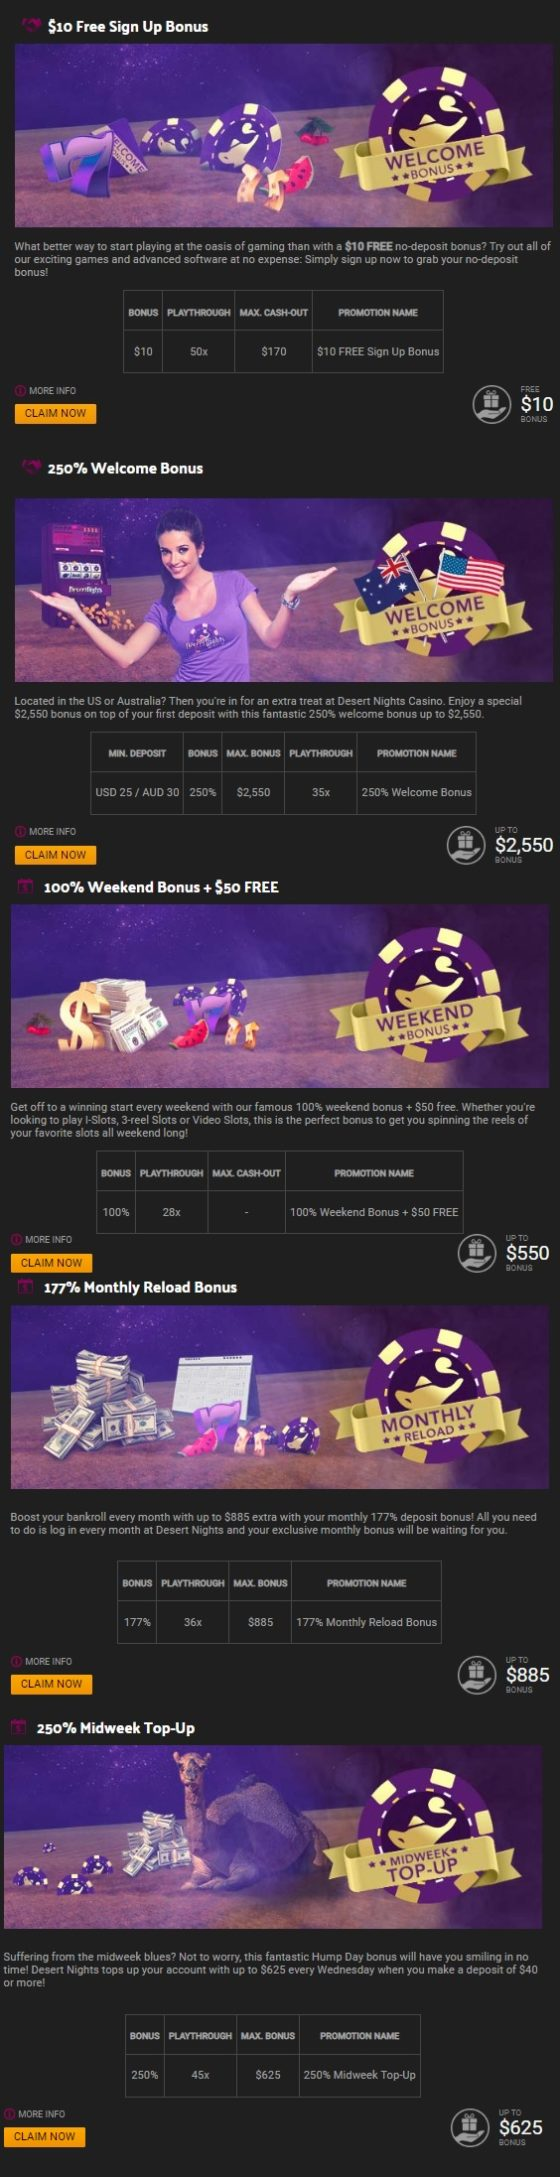 Desert Nights Casino Bonuses And Promotions